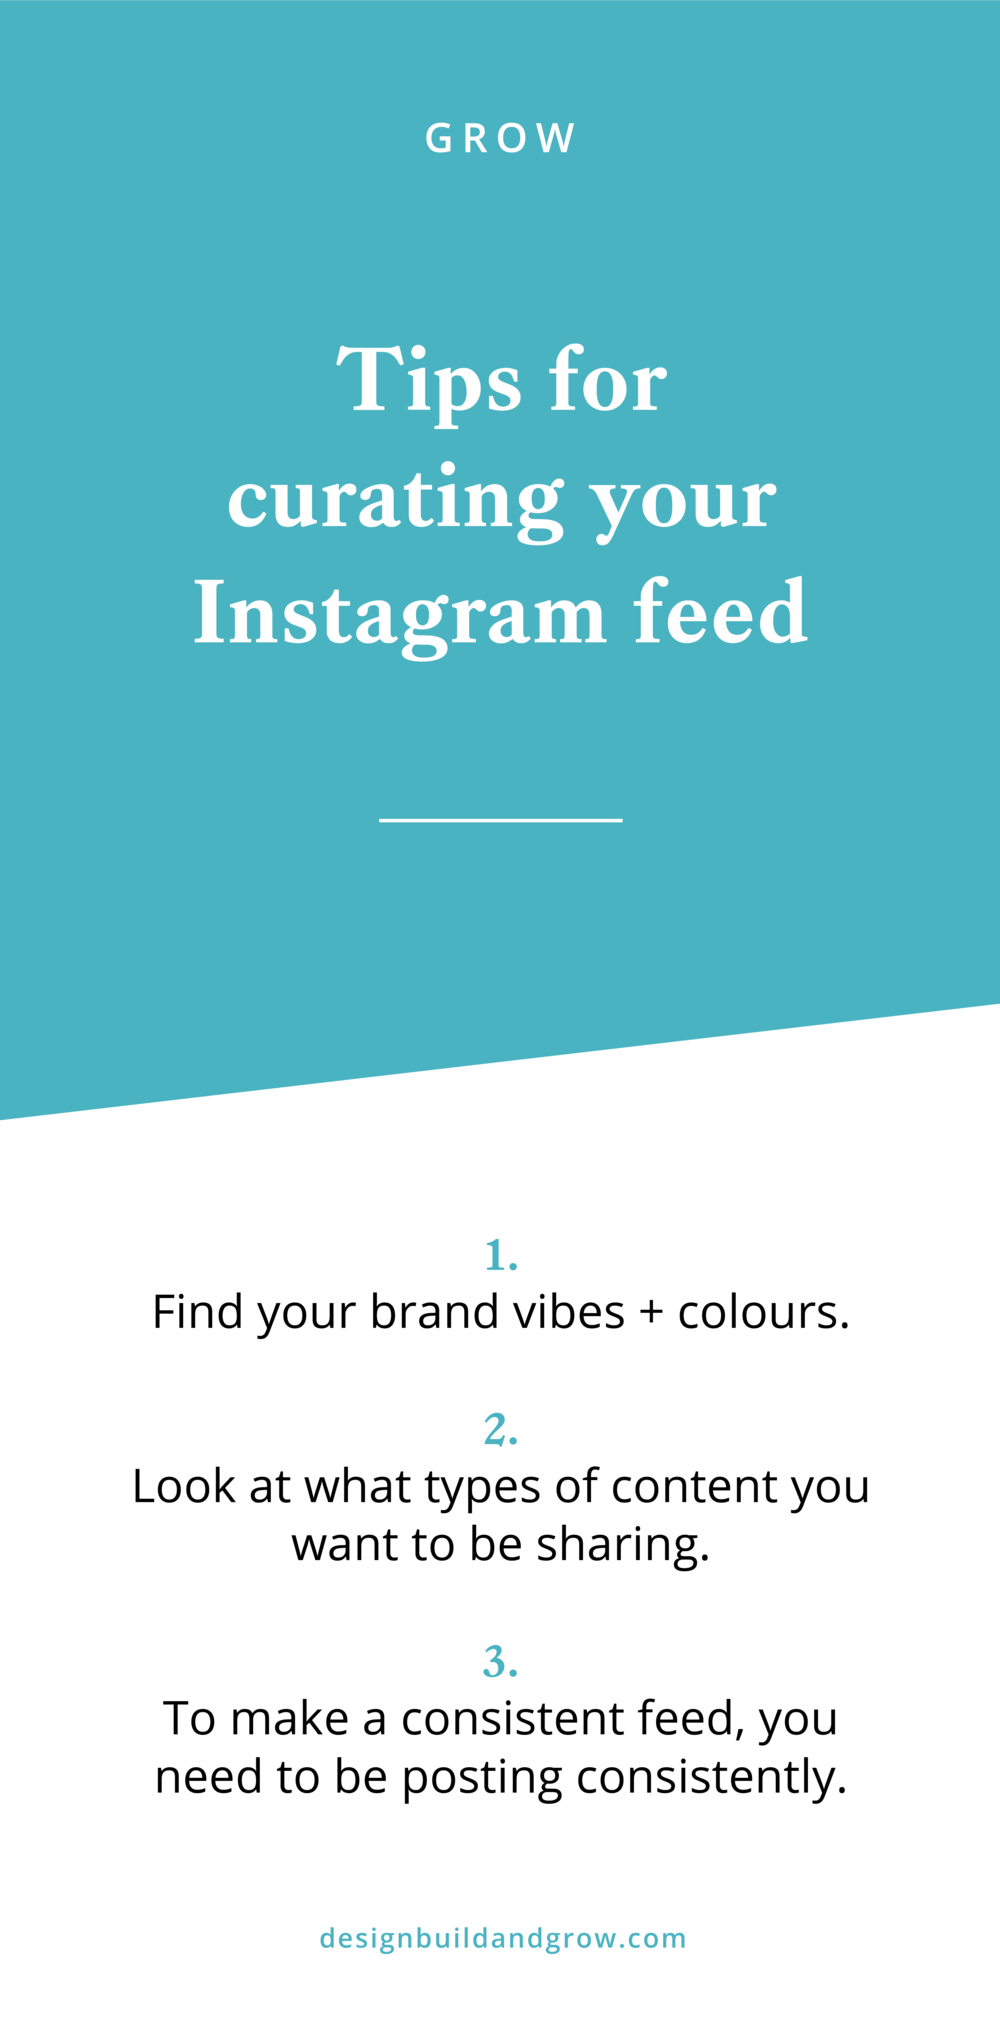 Curate your instagram feed to match your brand with these tips from Salt Design Co.